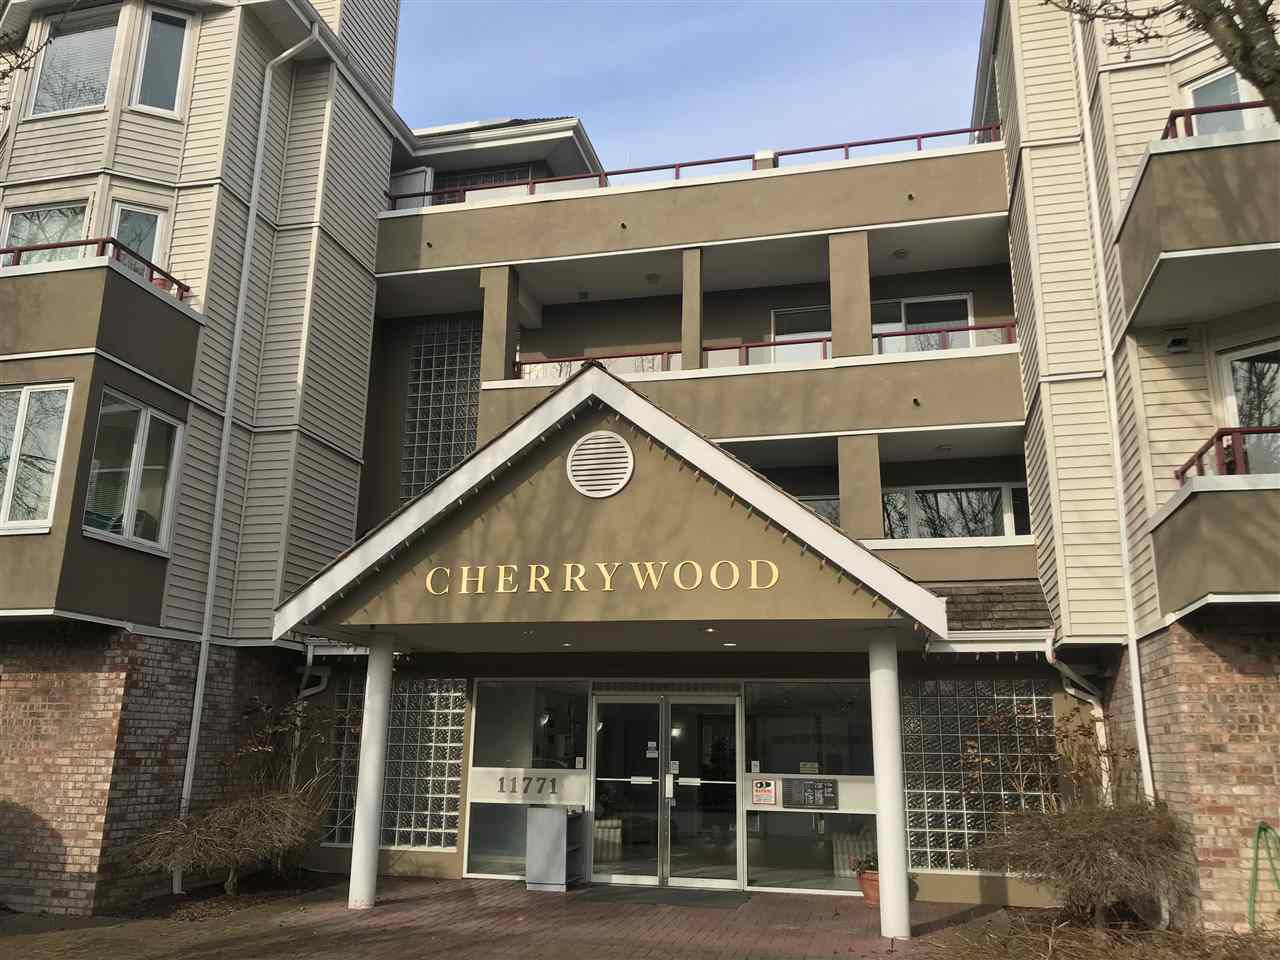 """Main Photo: 305 11771 DANIELS Road in Richmond: East Cambie Condo for sale in """"CHERRYWOOD MANOR"""" : MLS®# R2339982"""